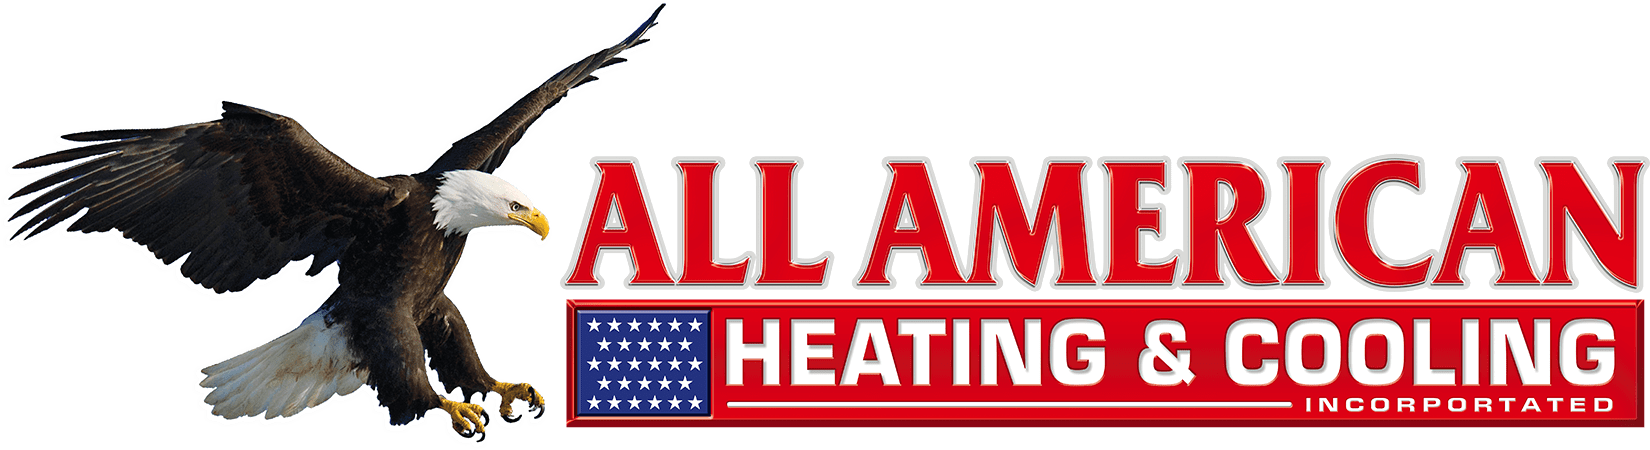 Furnace Amp Air Conditioners Kansas City North